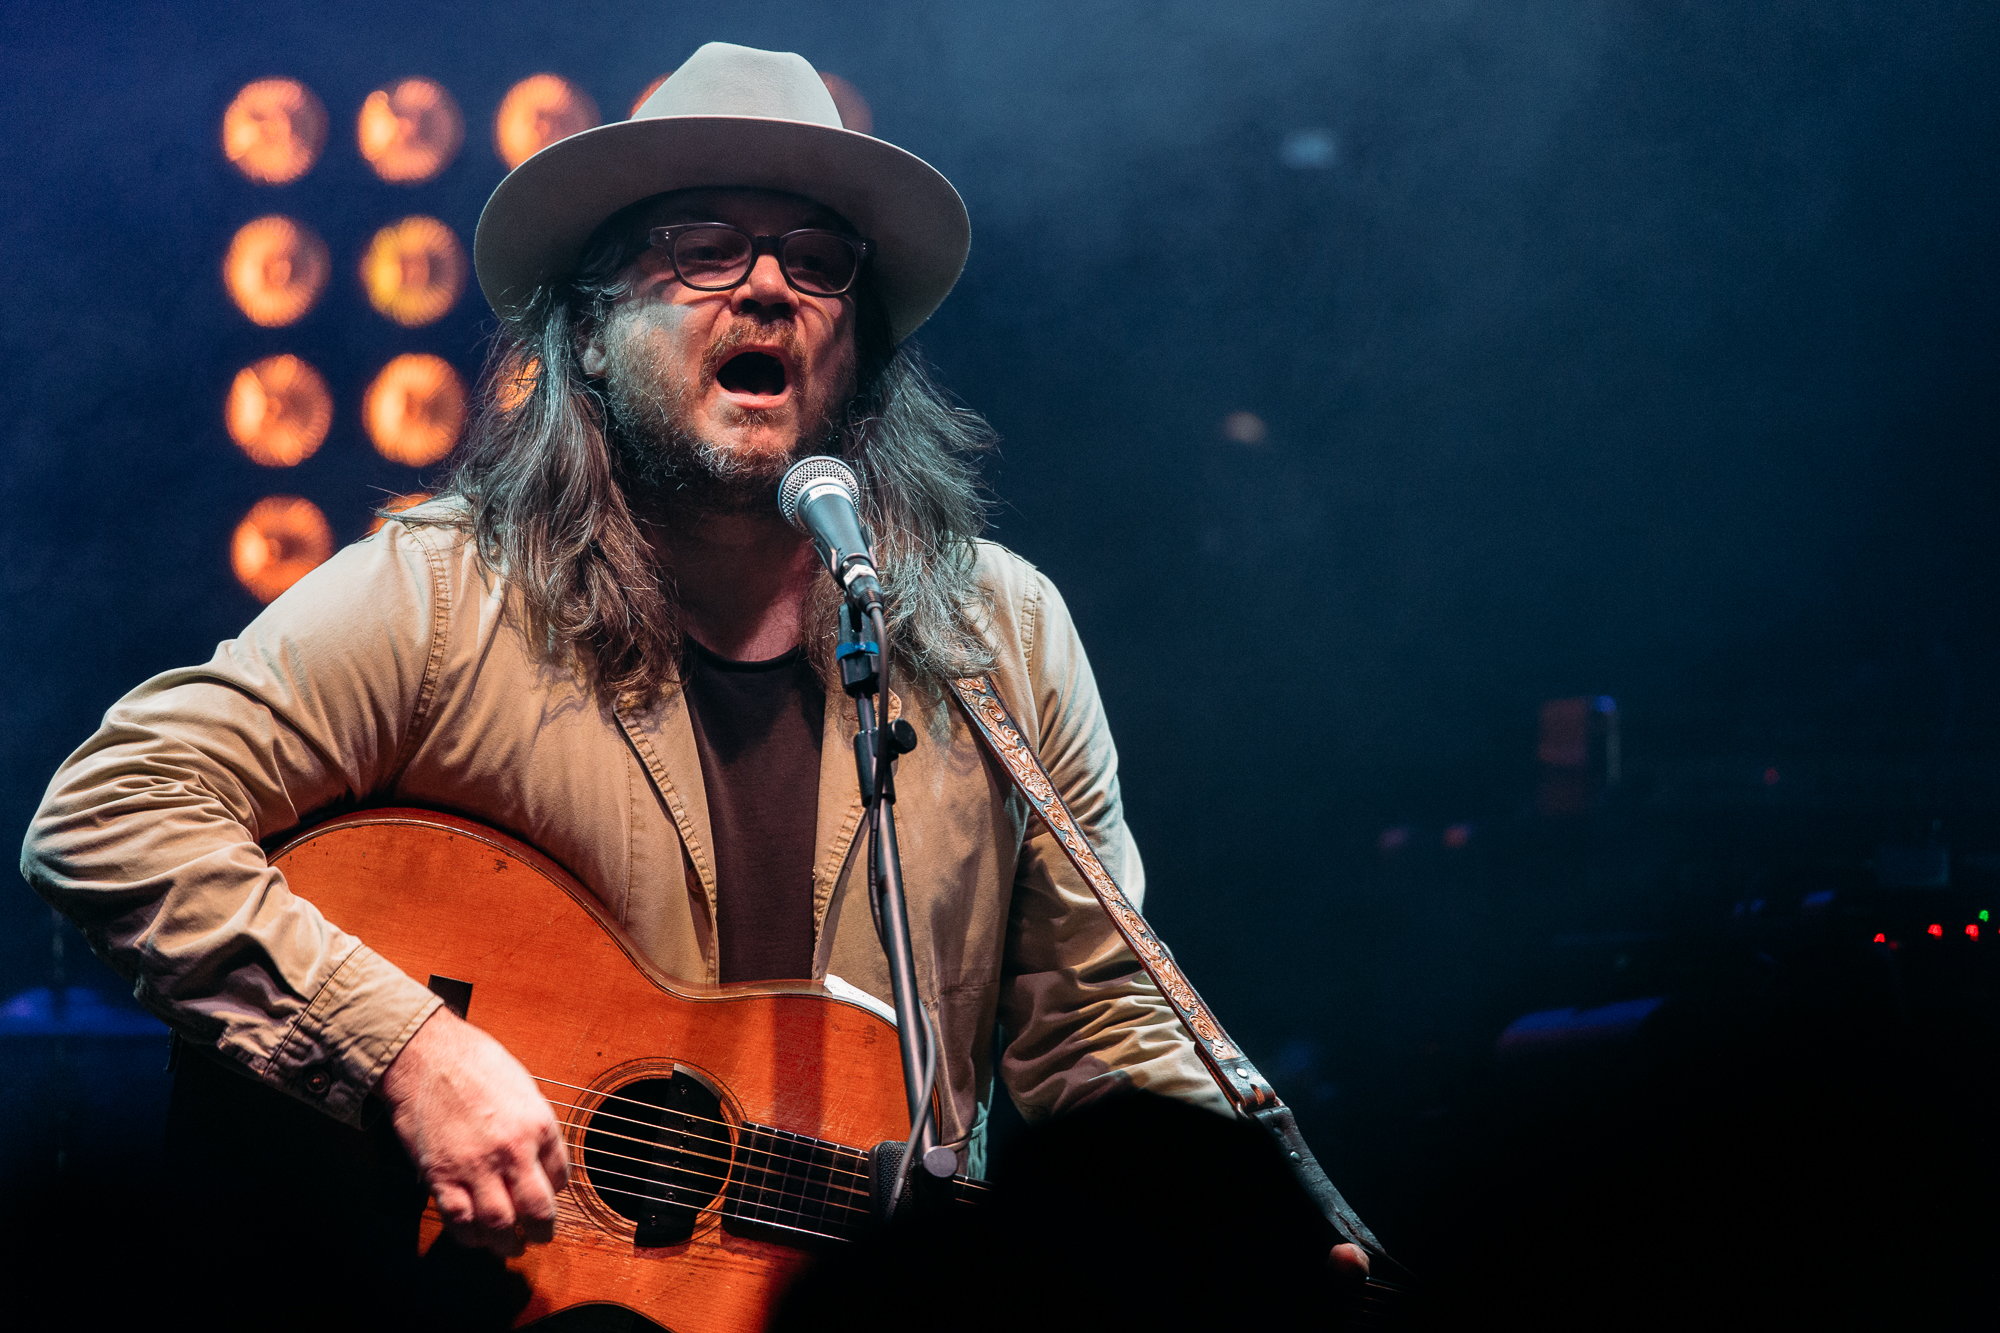 Jeff Tweedy of Wilco performing a solo acoustic set at 9:30 Club (Photo by Mauricio Castro /  @themauricio )